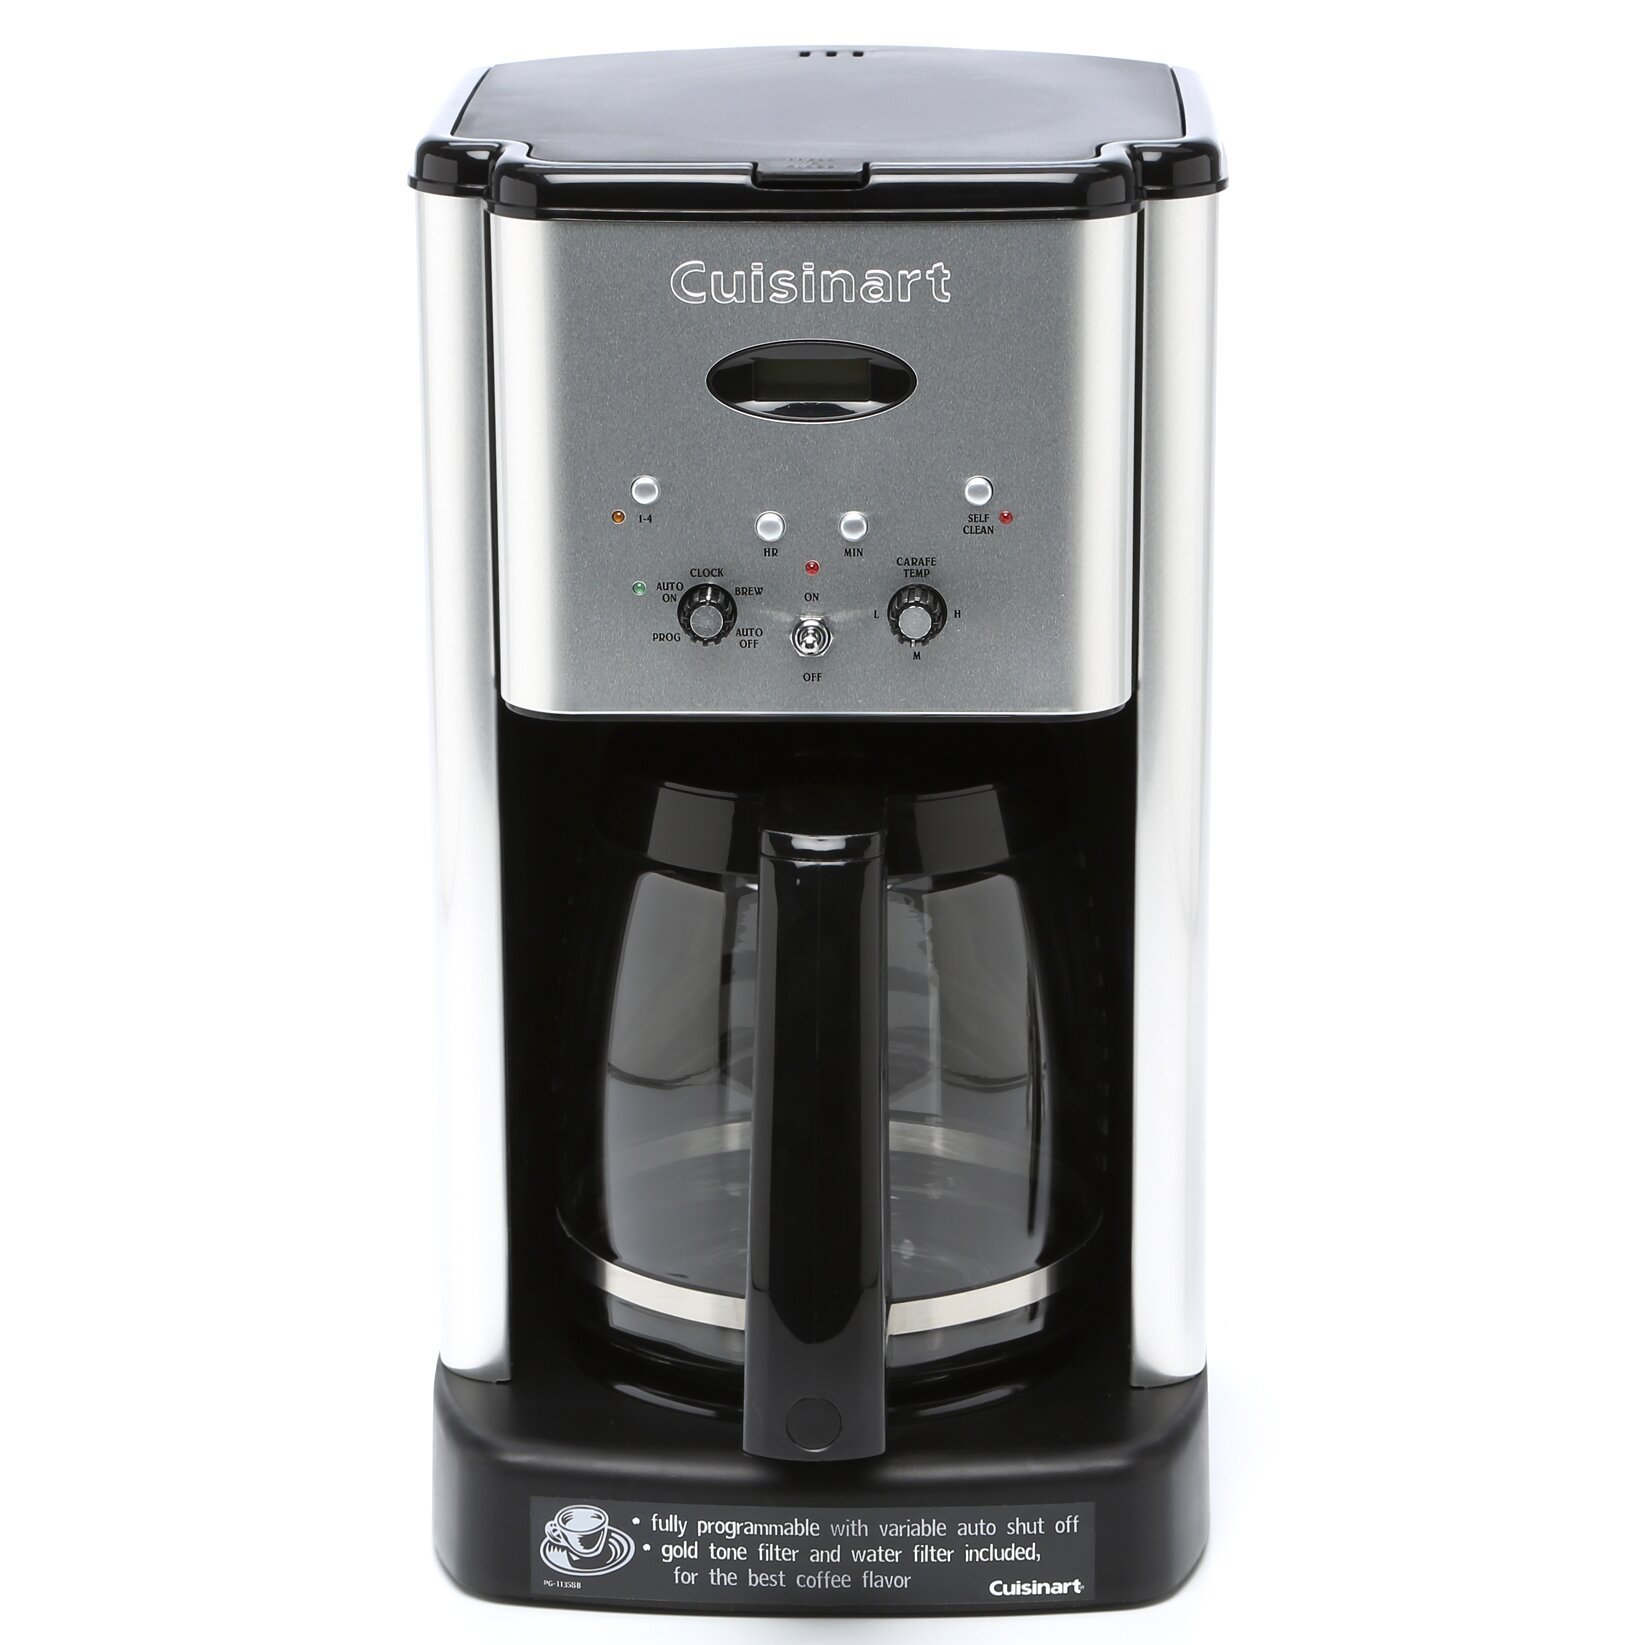 cuisinart 12 cup coffee maker cuisinart 12 cup brew central programmable coffee maker 11012